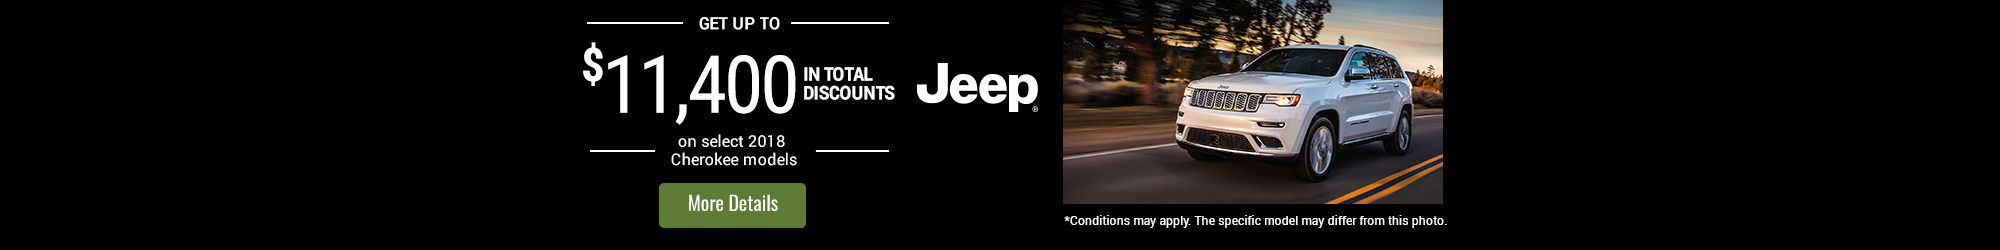 Event - Jeep